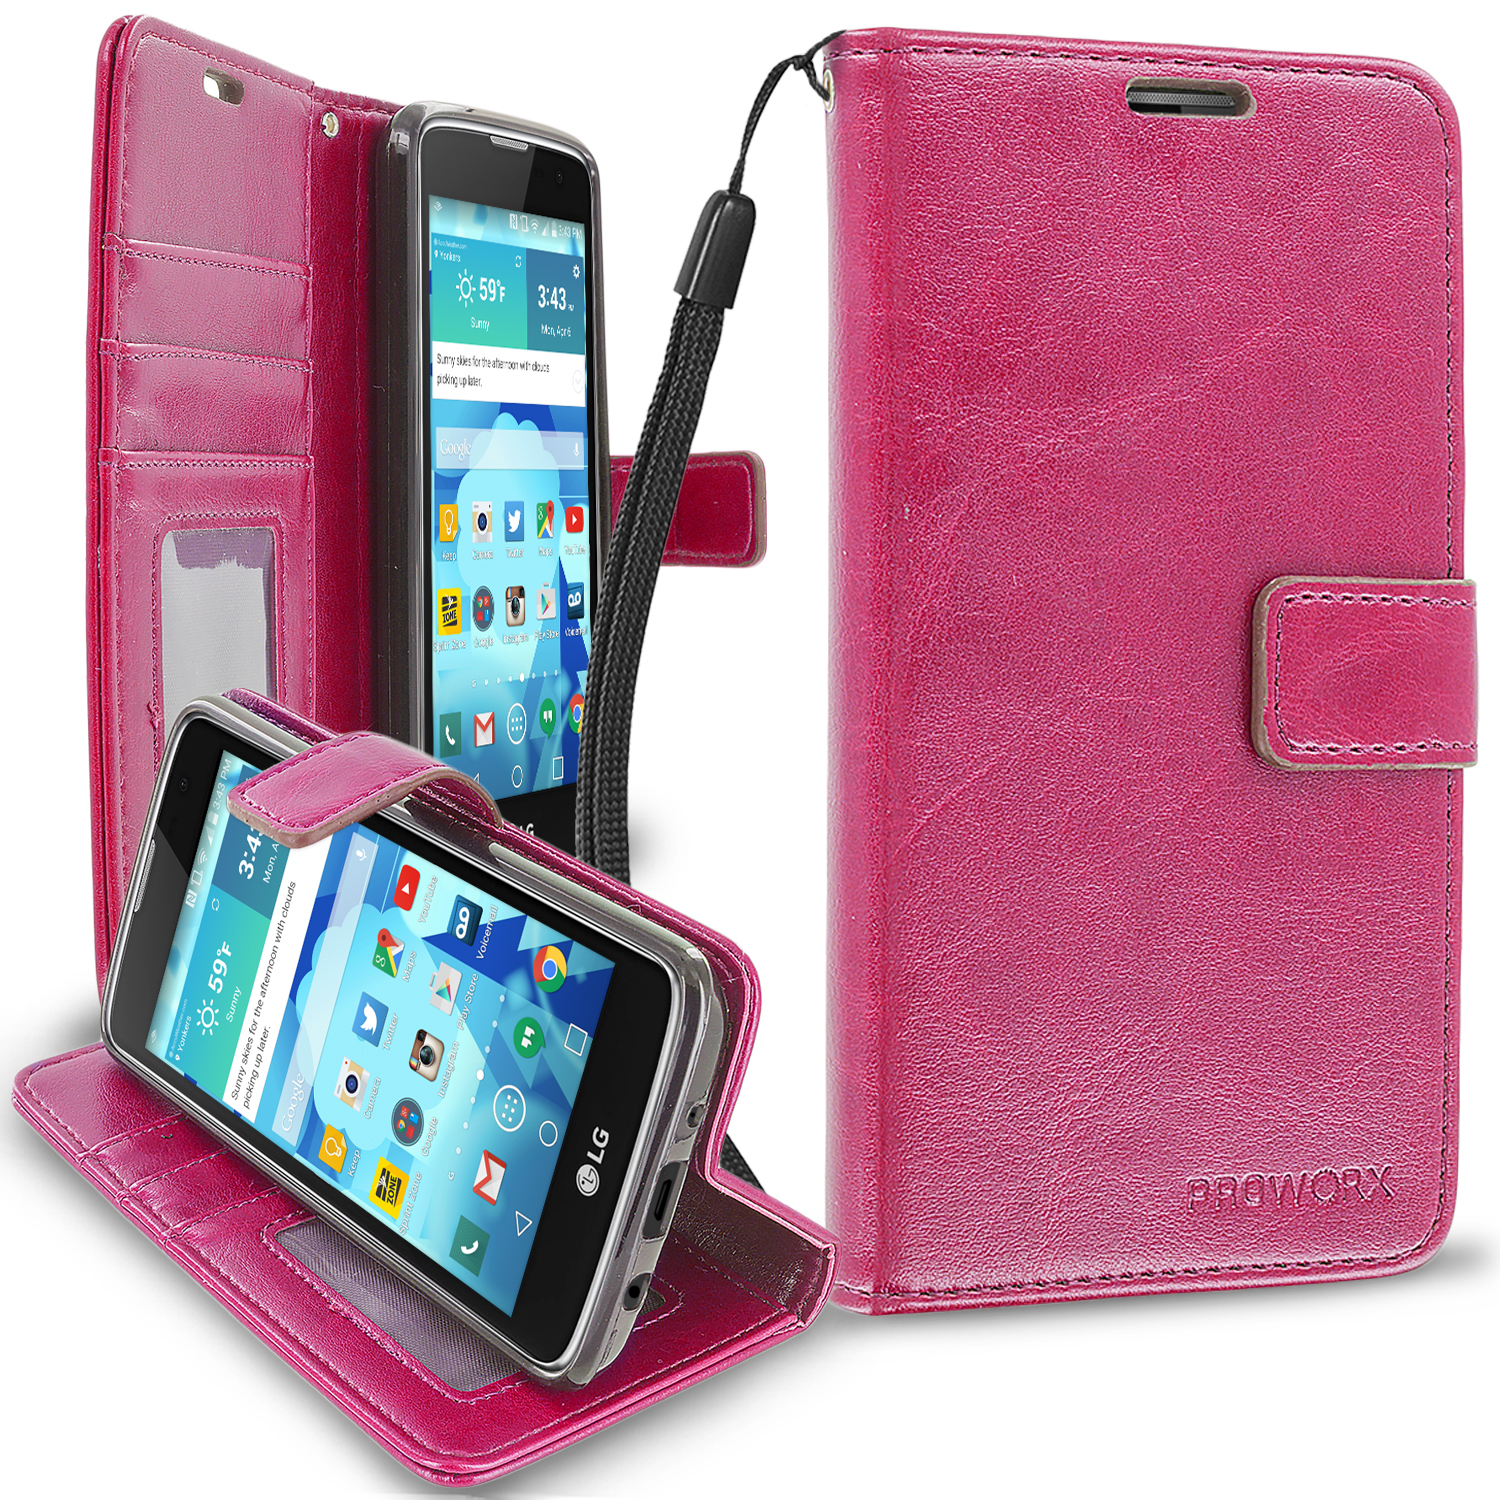 LG Tribute 5 K7 Hot Pink ProWorx Wallet Case Luxury PU Leather Case Cover With Card Slots & Stand